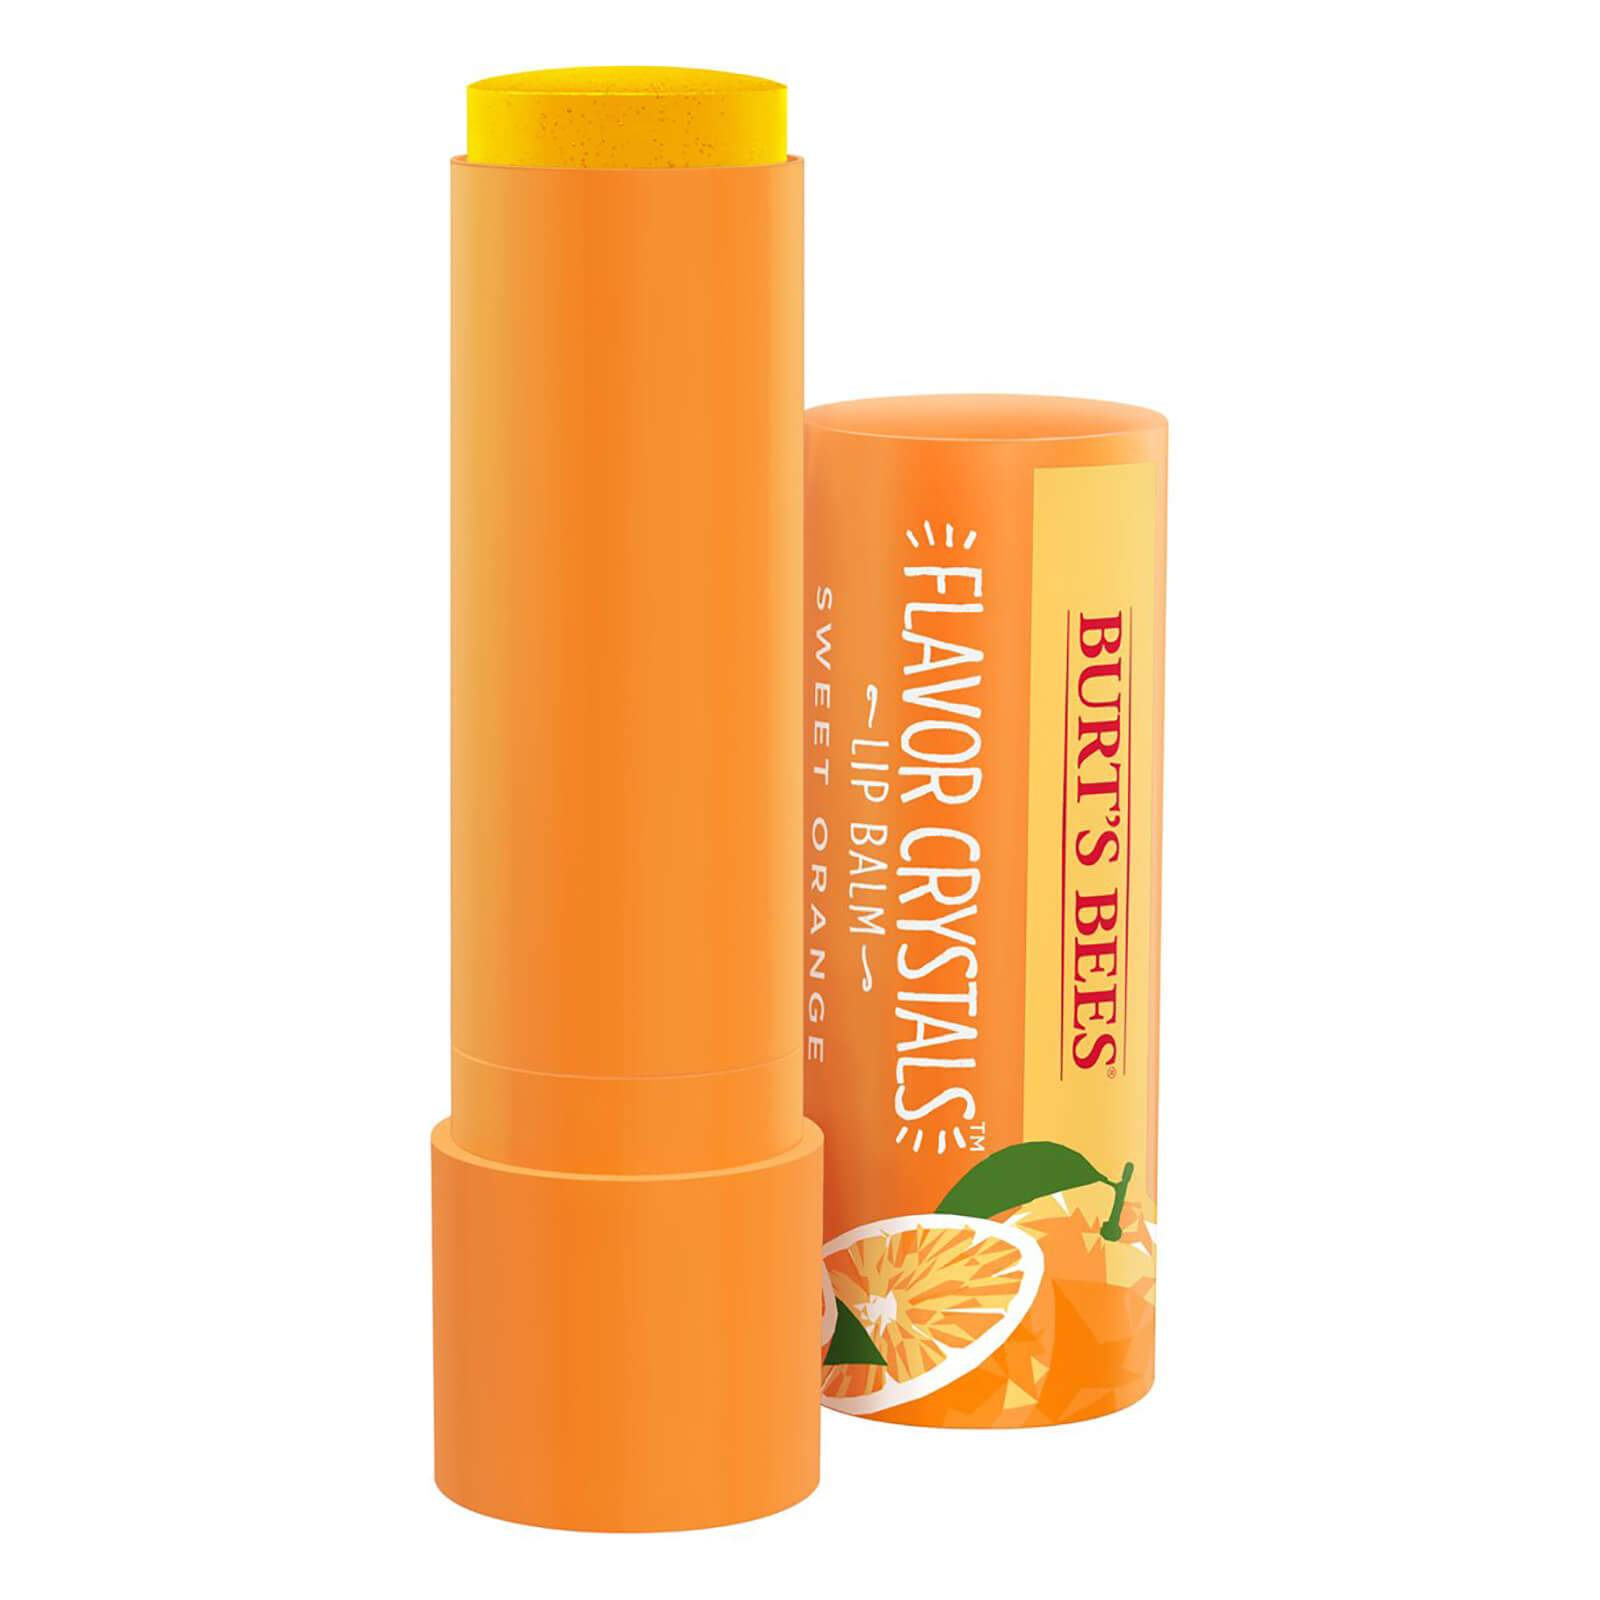 Burts Bees Flavour Crystals 100% Natural Moisturising Lip Balm - Sweet Orange 4.53g